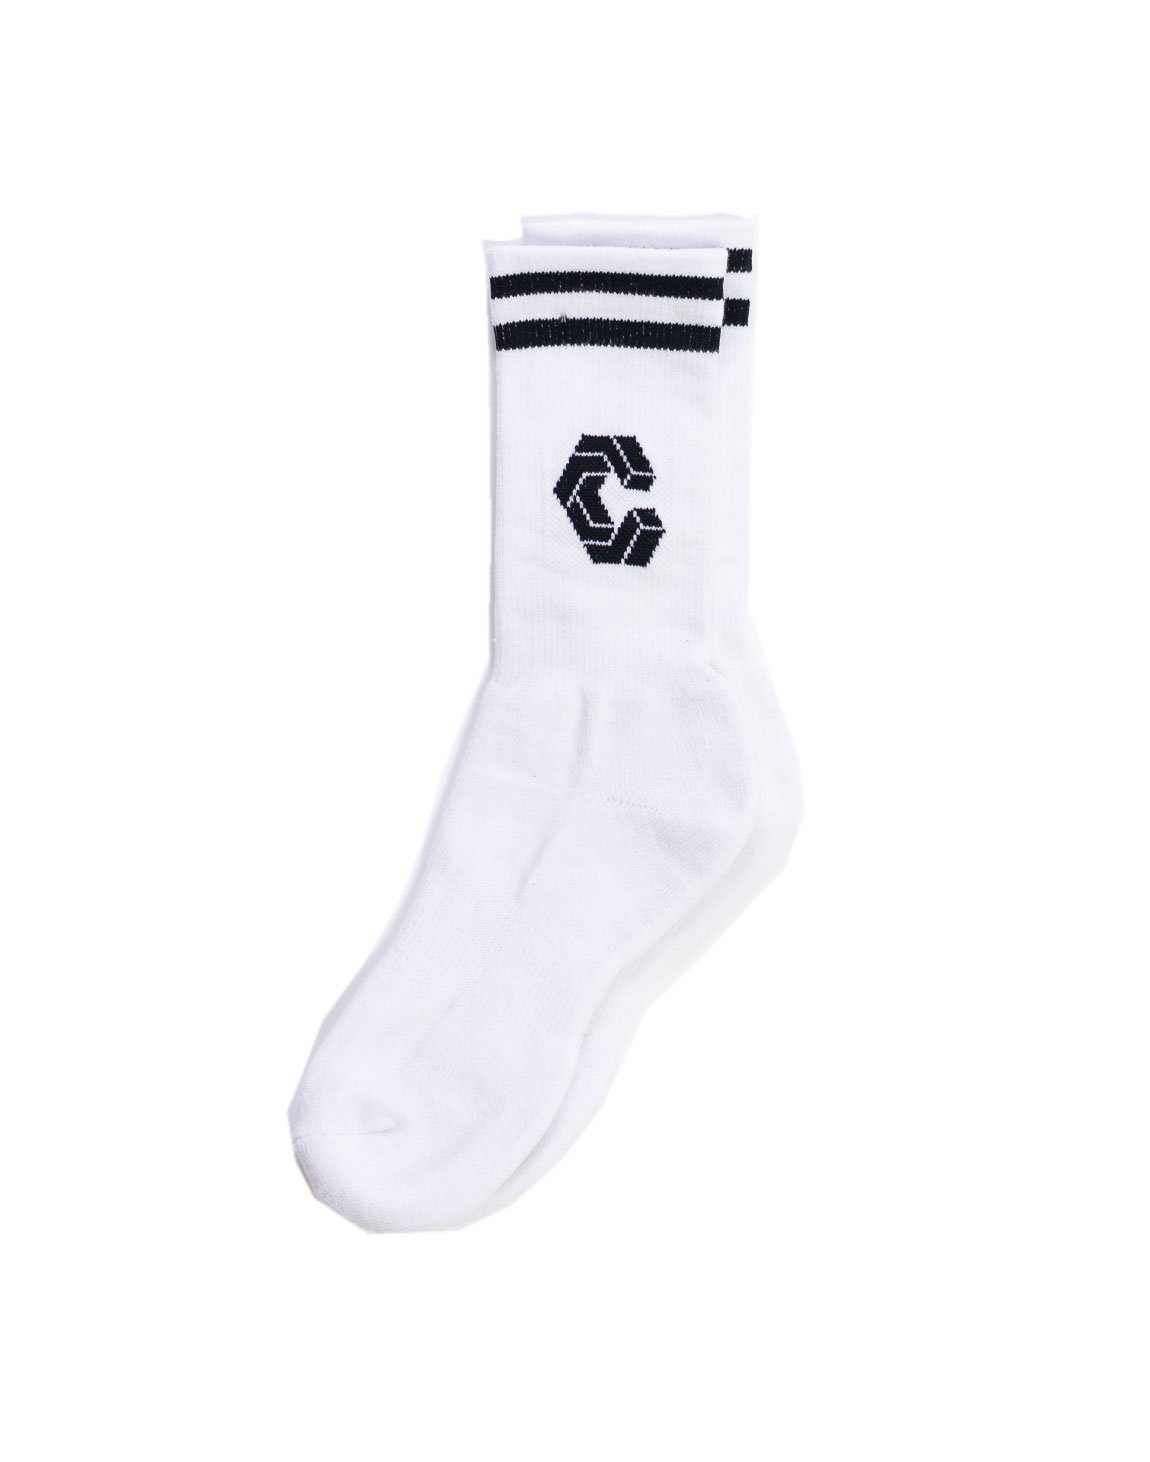 <img class='new_mark_img1' src='https://img.shop-pro.jp/img/new/icons1.gif' style='border:none;display:inline;margin:0px;padding:0px;width:auto;' />CRONOS BIG LOGO SOCKS WHITE